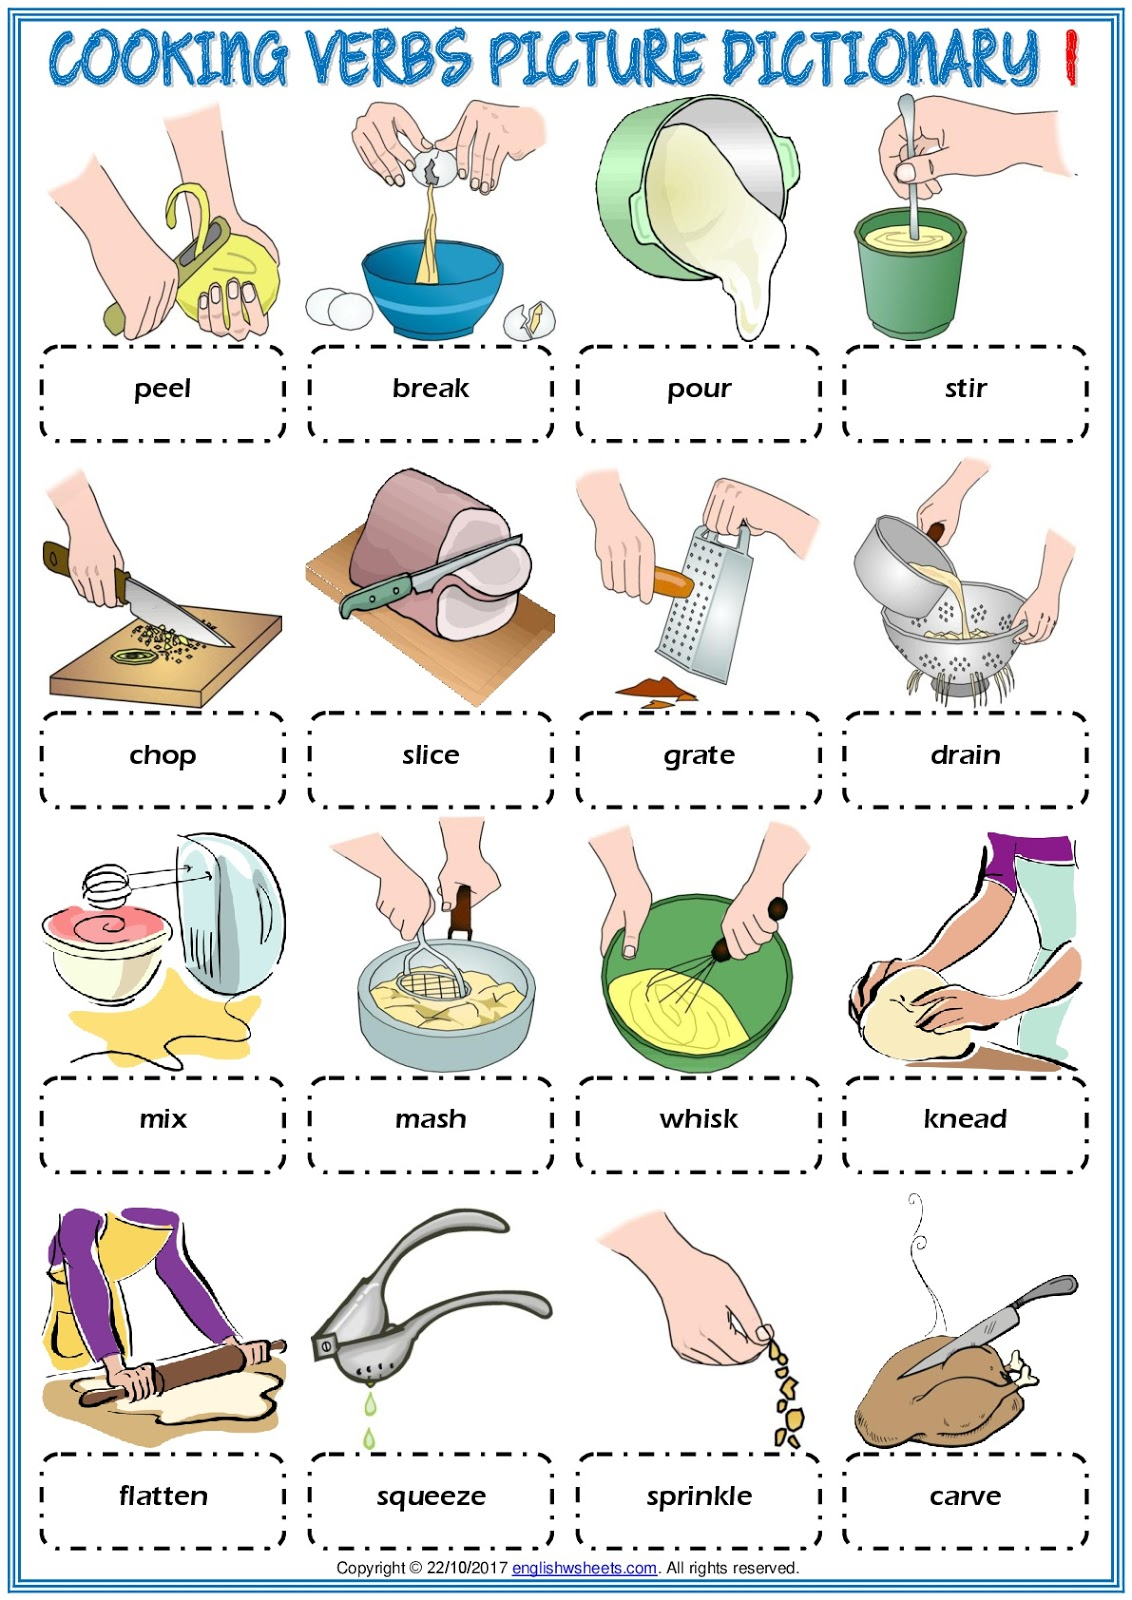 Gainzuri English Cooking Verbs